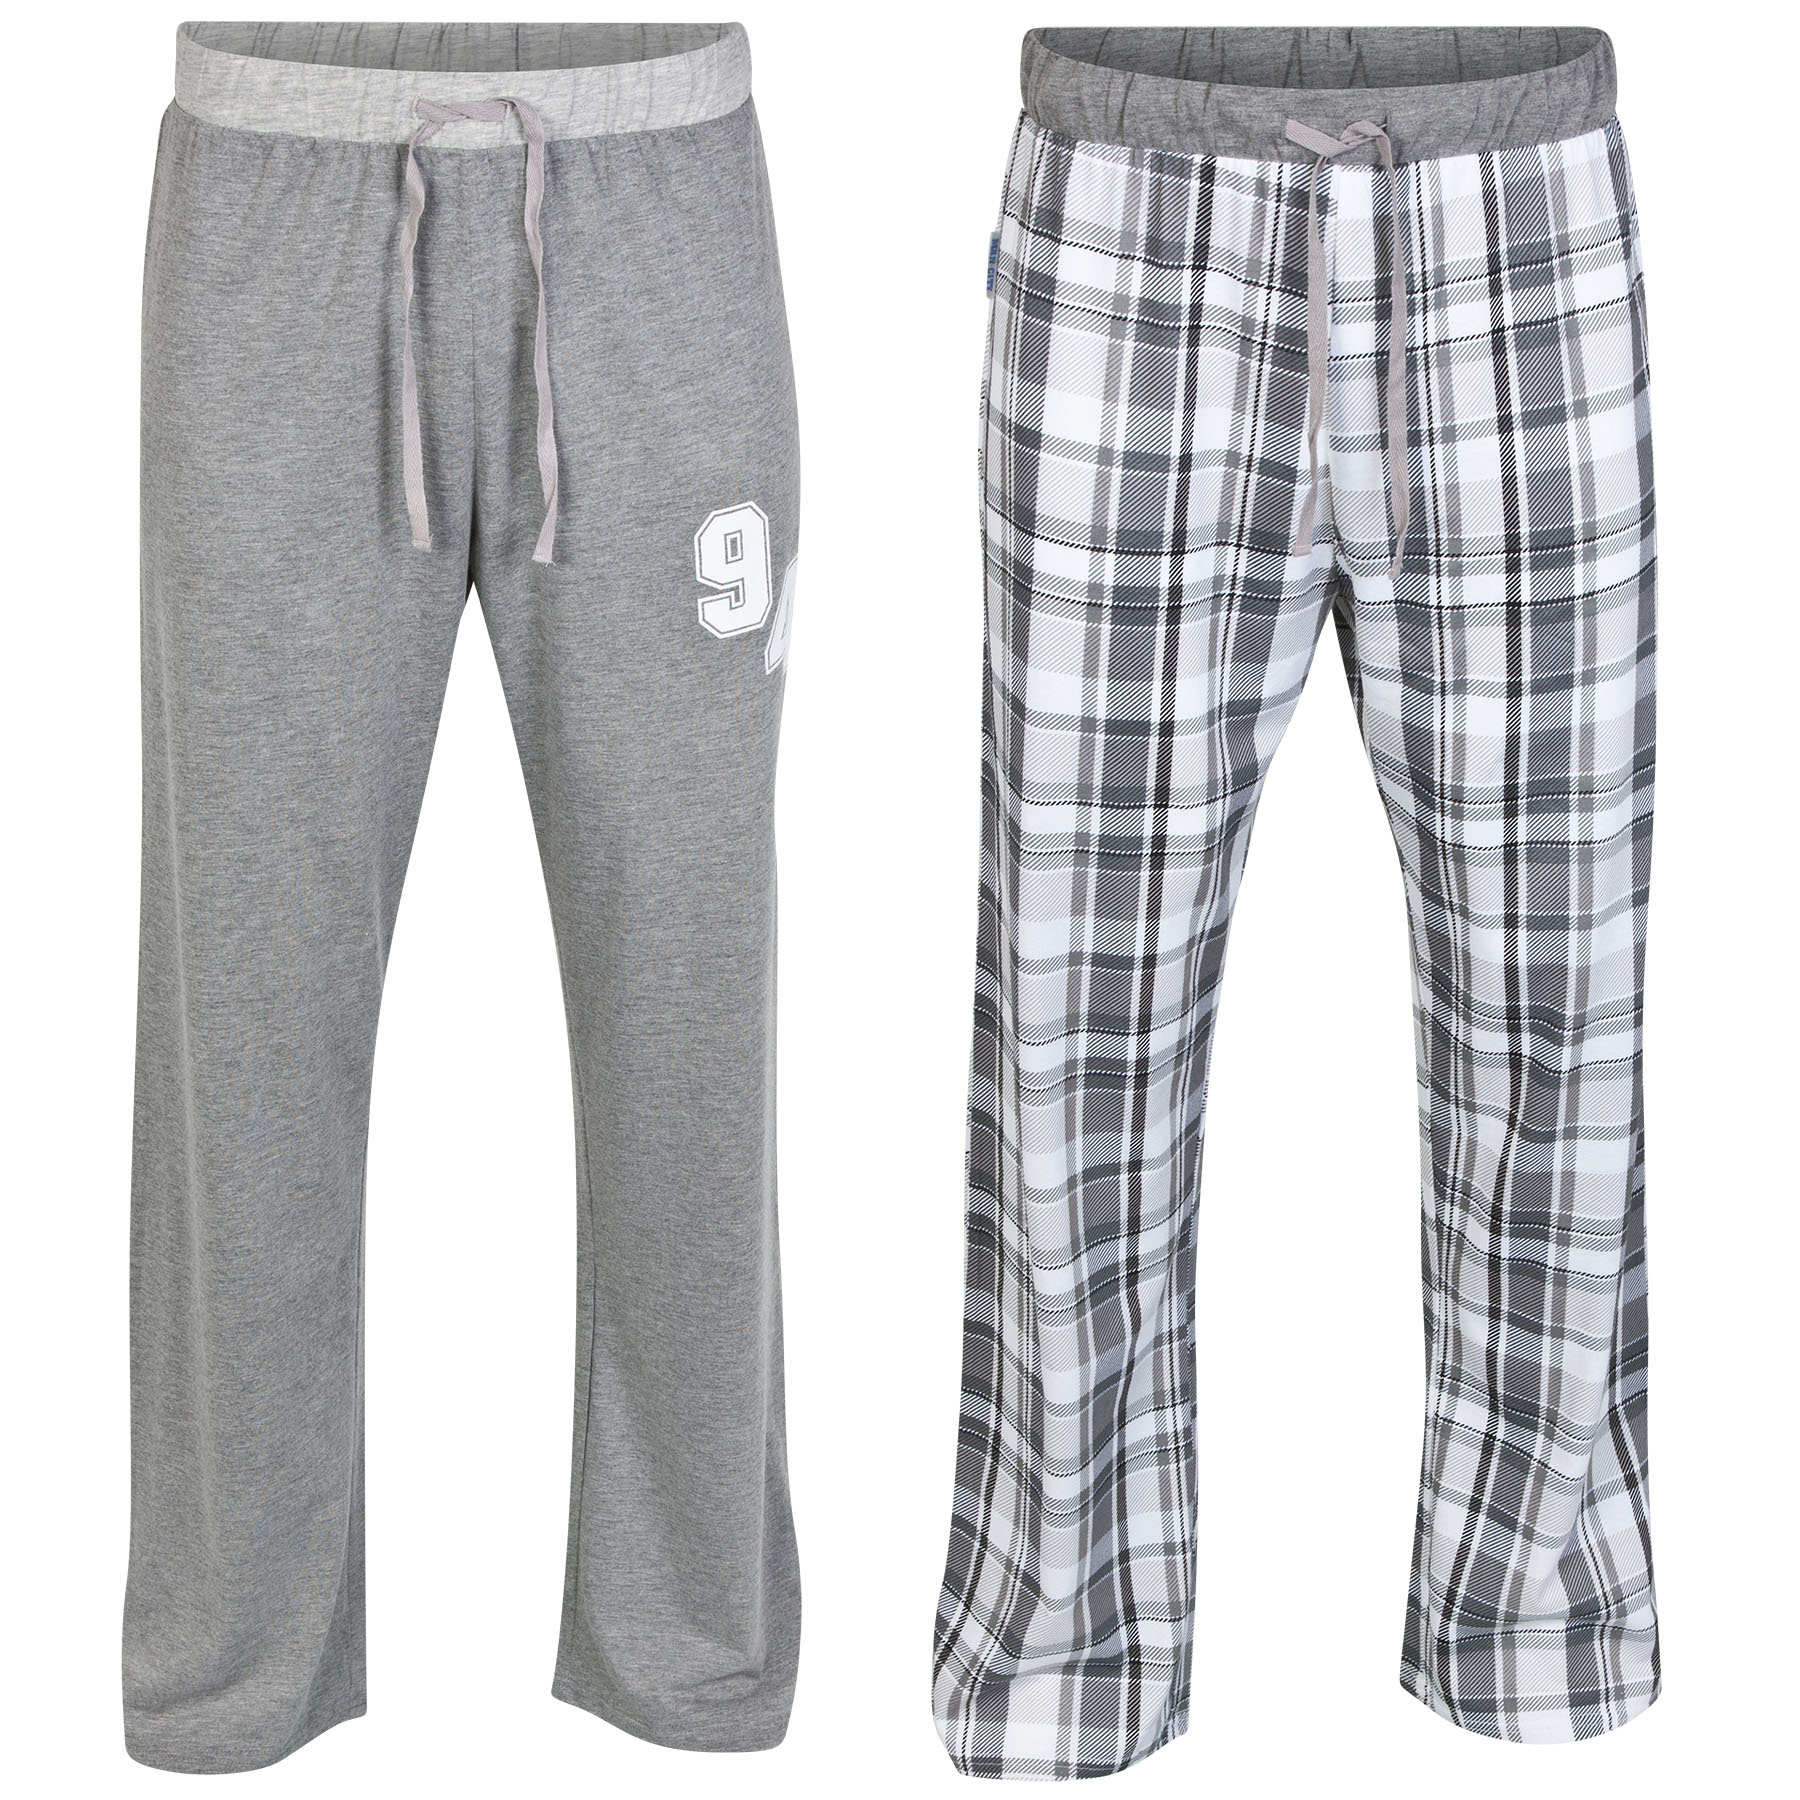 Manchester City 2PK Lounge Pants - Grey - Mens